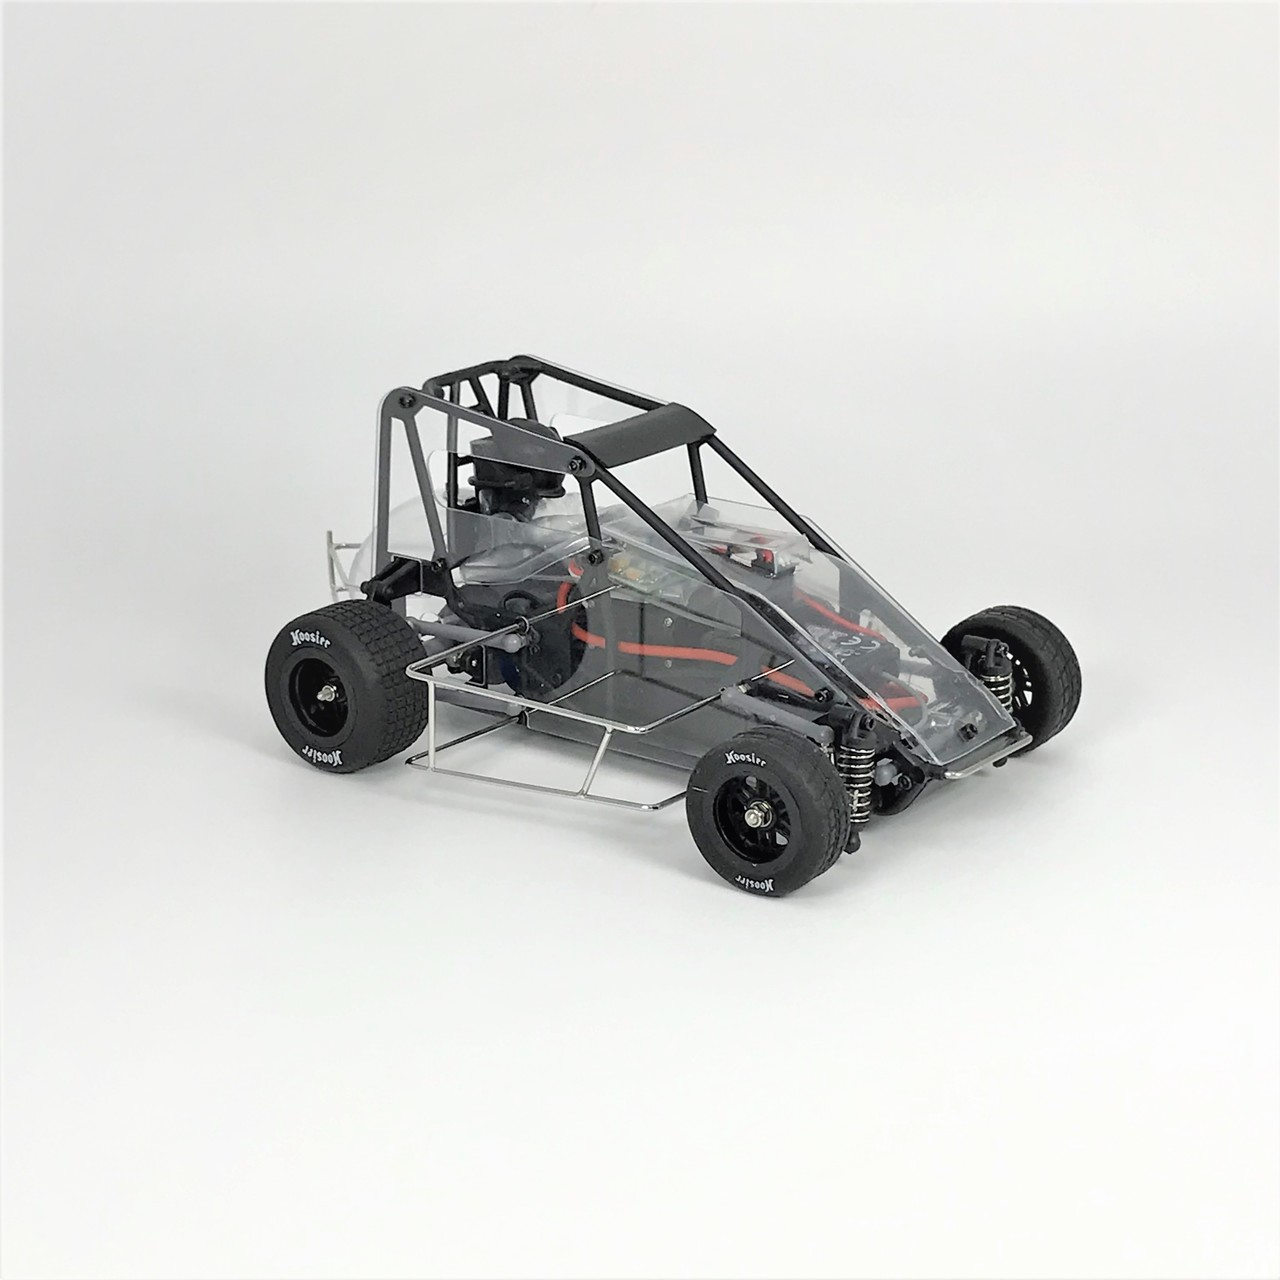 1RC Racing Midget 2 - Clear